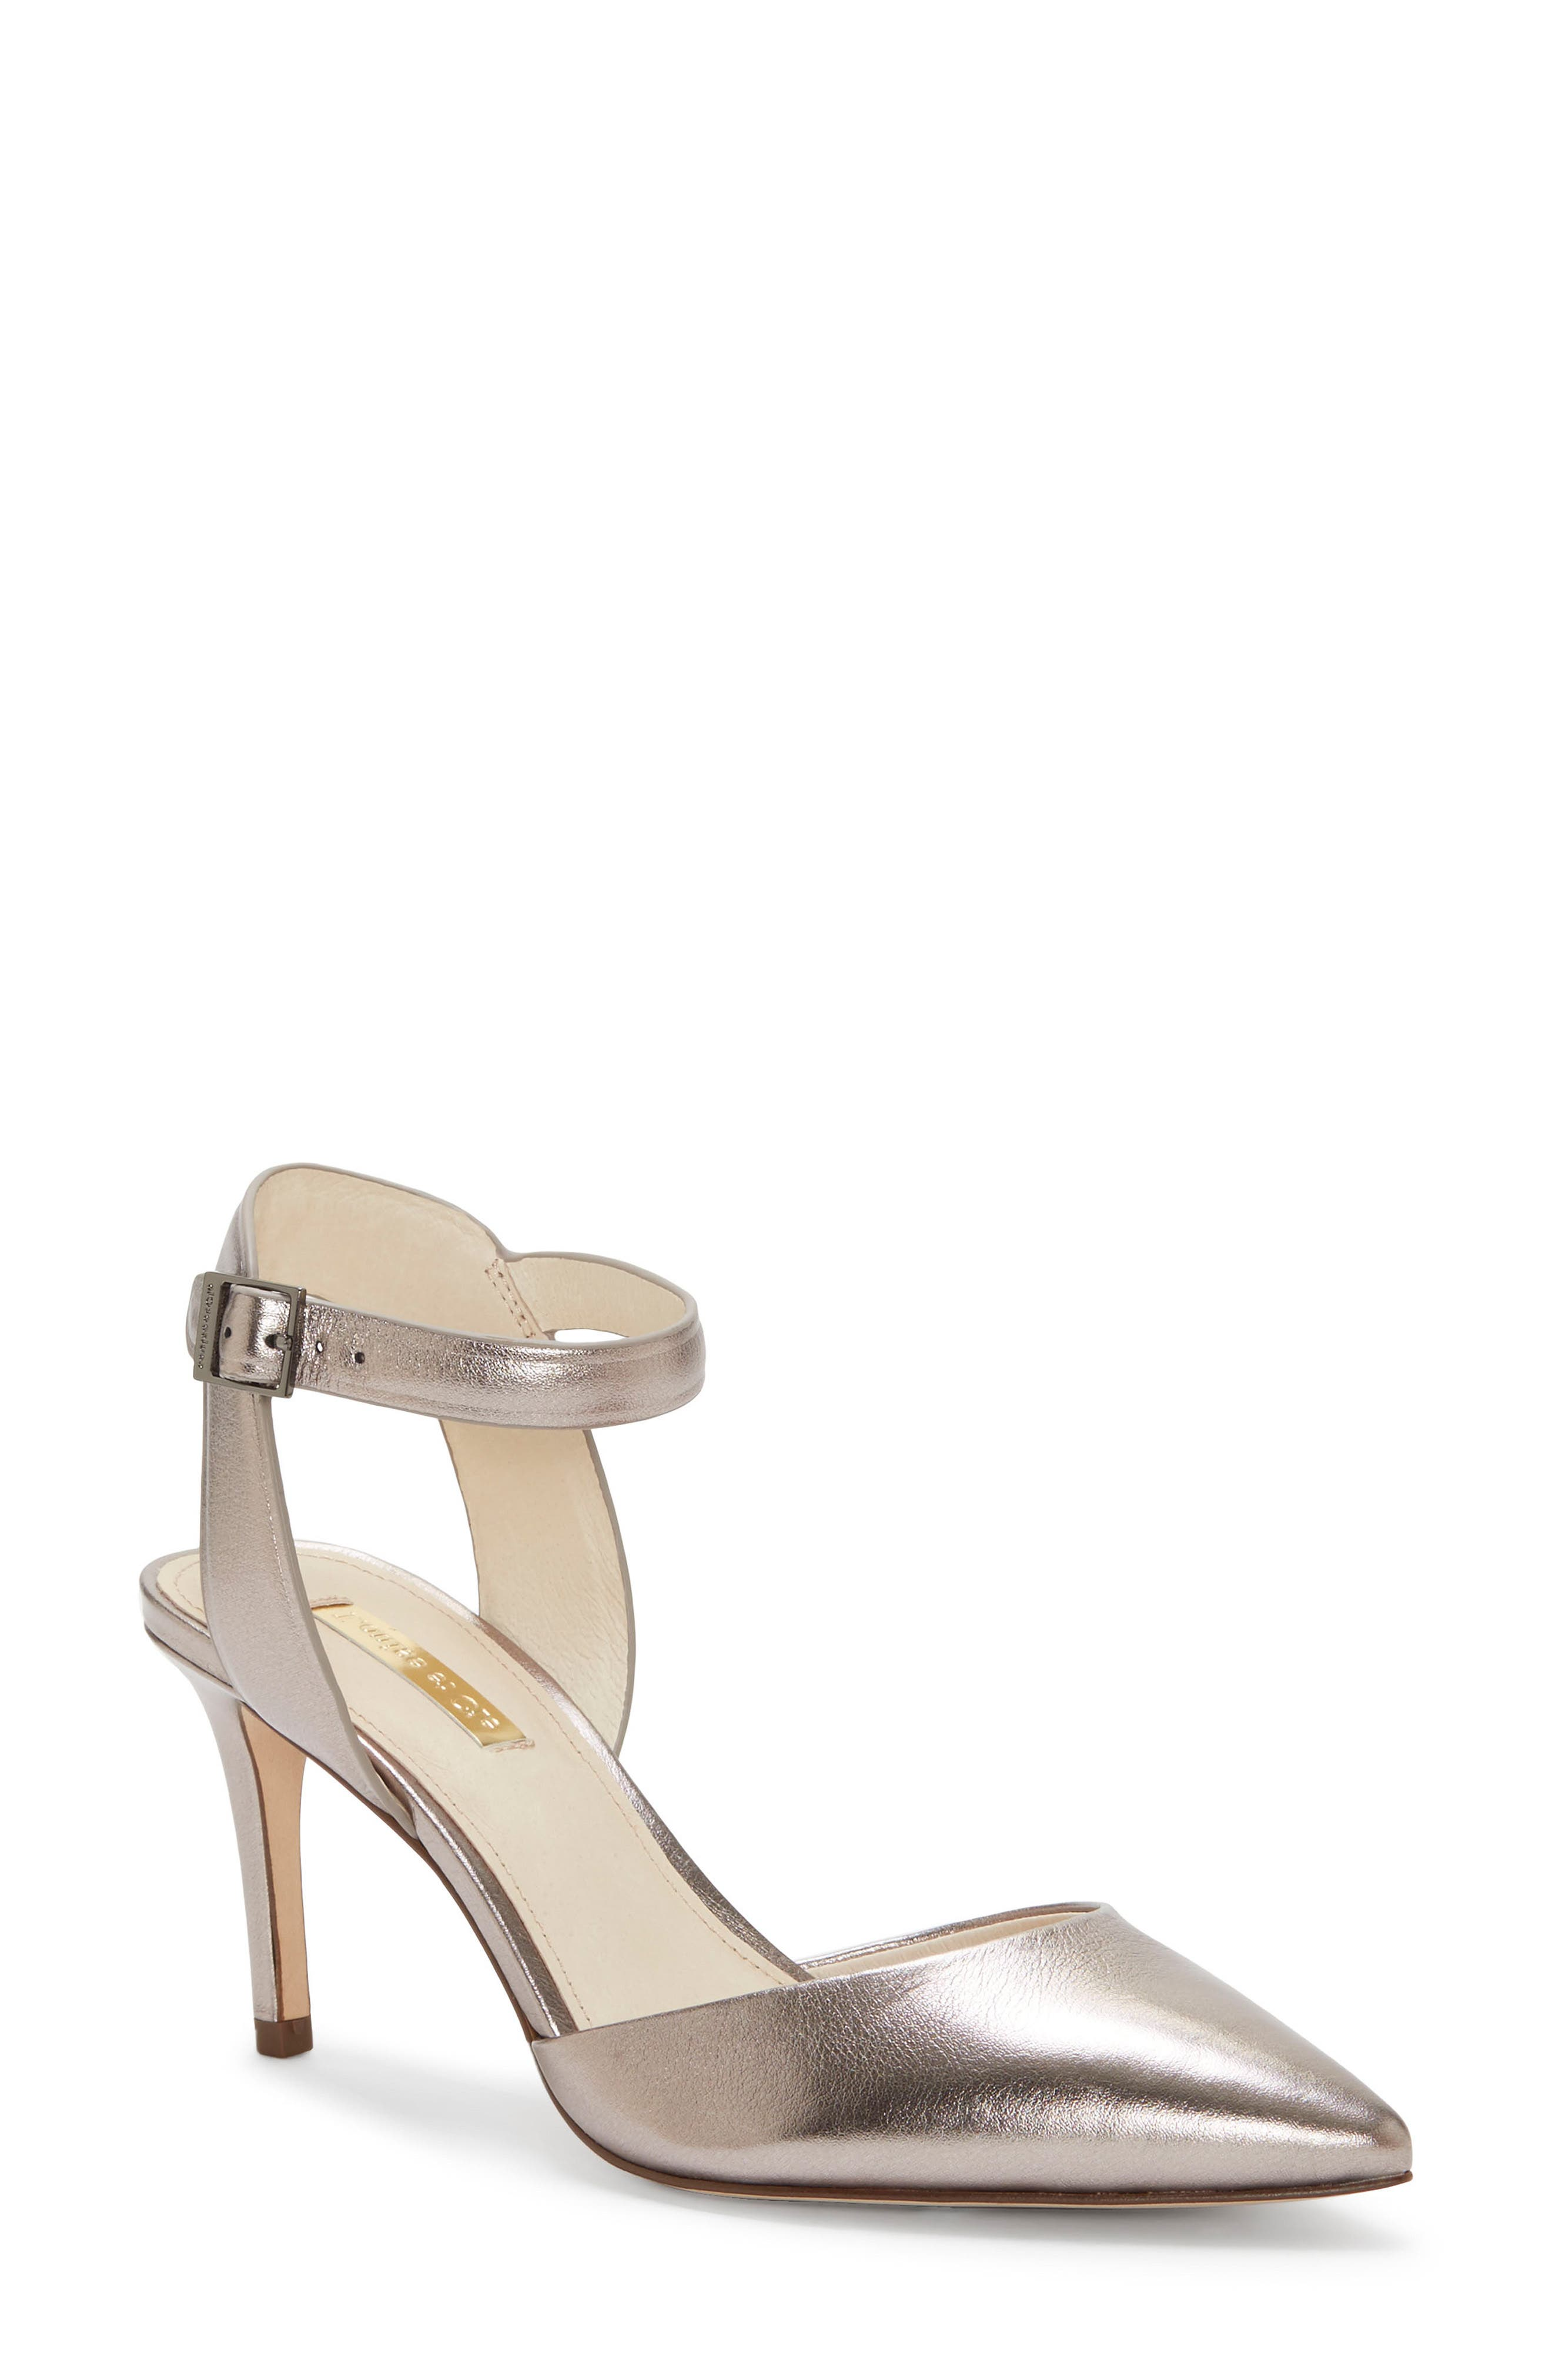 Kota Ankle Strap Pump,                         Main,                         color, PETROL METALLIC